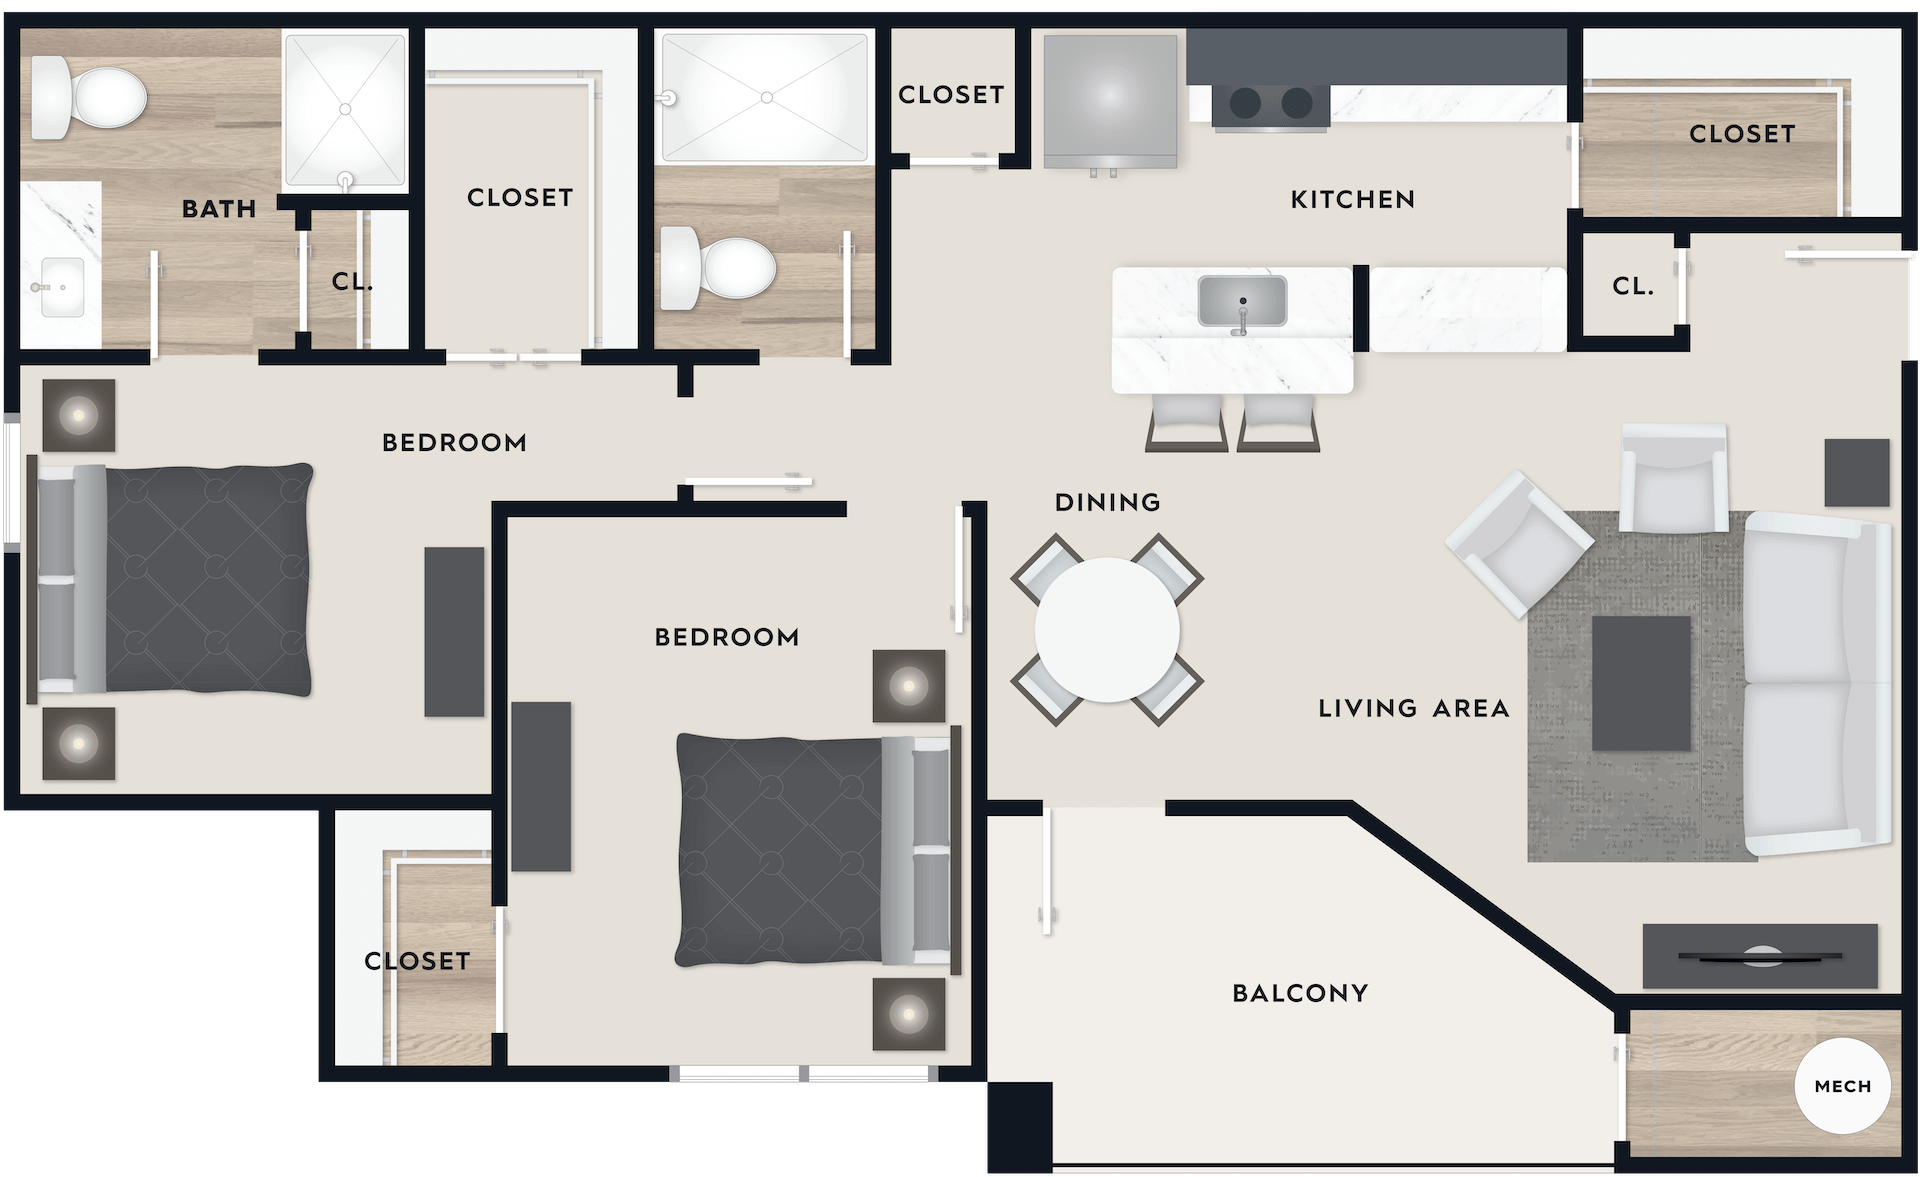 B1 floor plan, 1,068 square feet, 2 beds with walk-in closets, 2 baths, with a balcony.